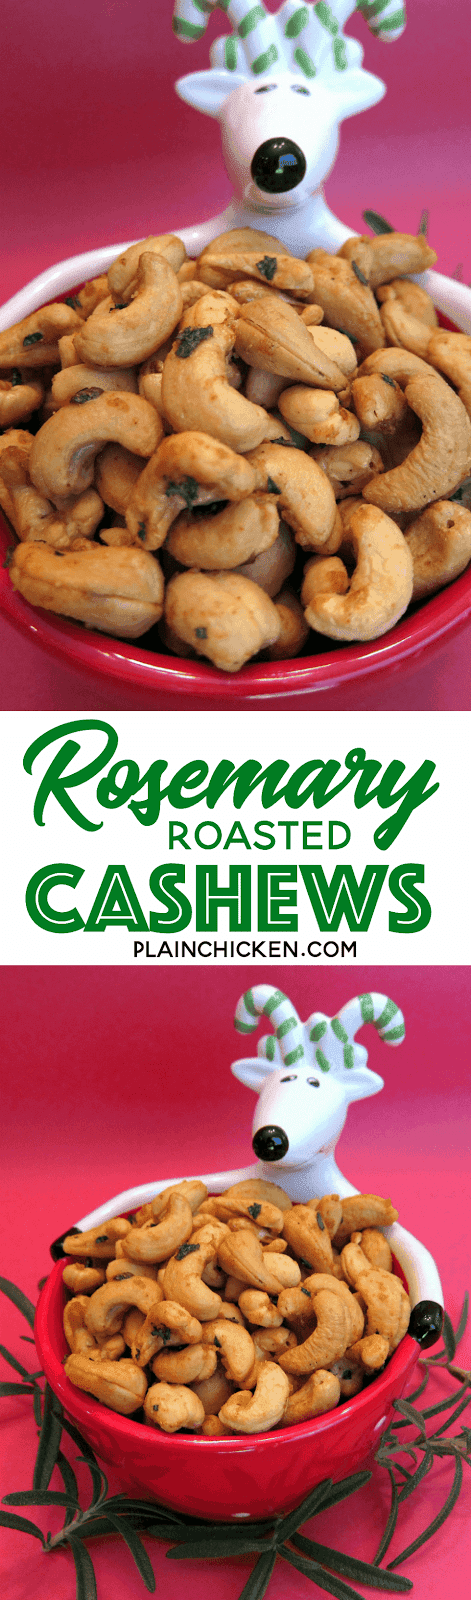 Rosemary Roasted Cashews - so easy and CRAZY good! Only 5 ingredients - cashews, rosemary, cayenne, butter and brown sugar. Ready in 10 minutes. Great for parties! Also makes a great homemade gift. #partyfood #cashews #partynuts